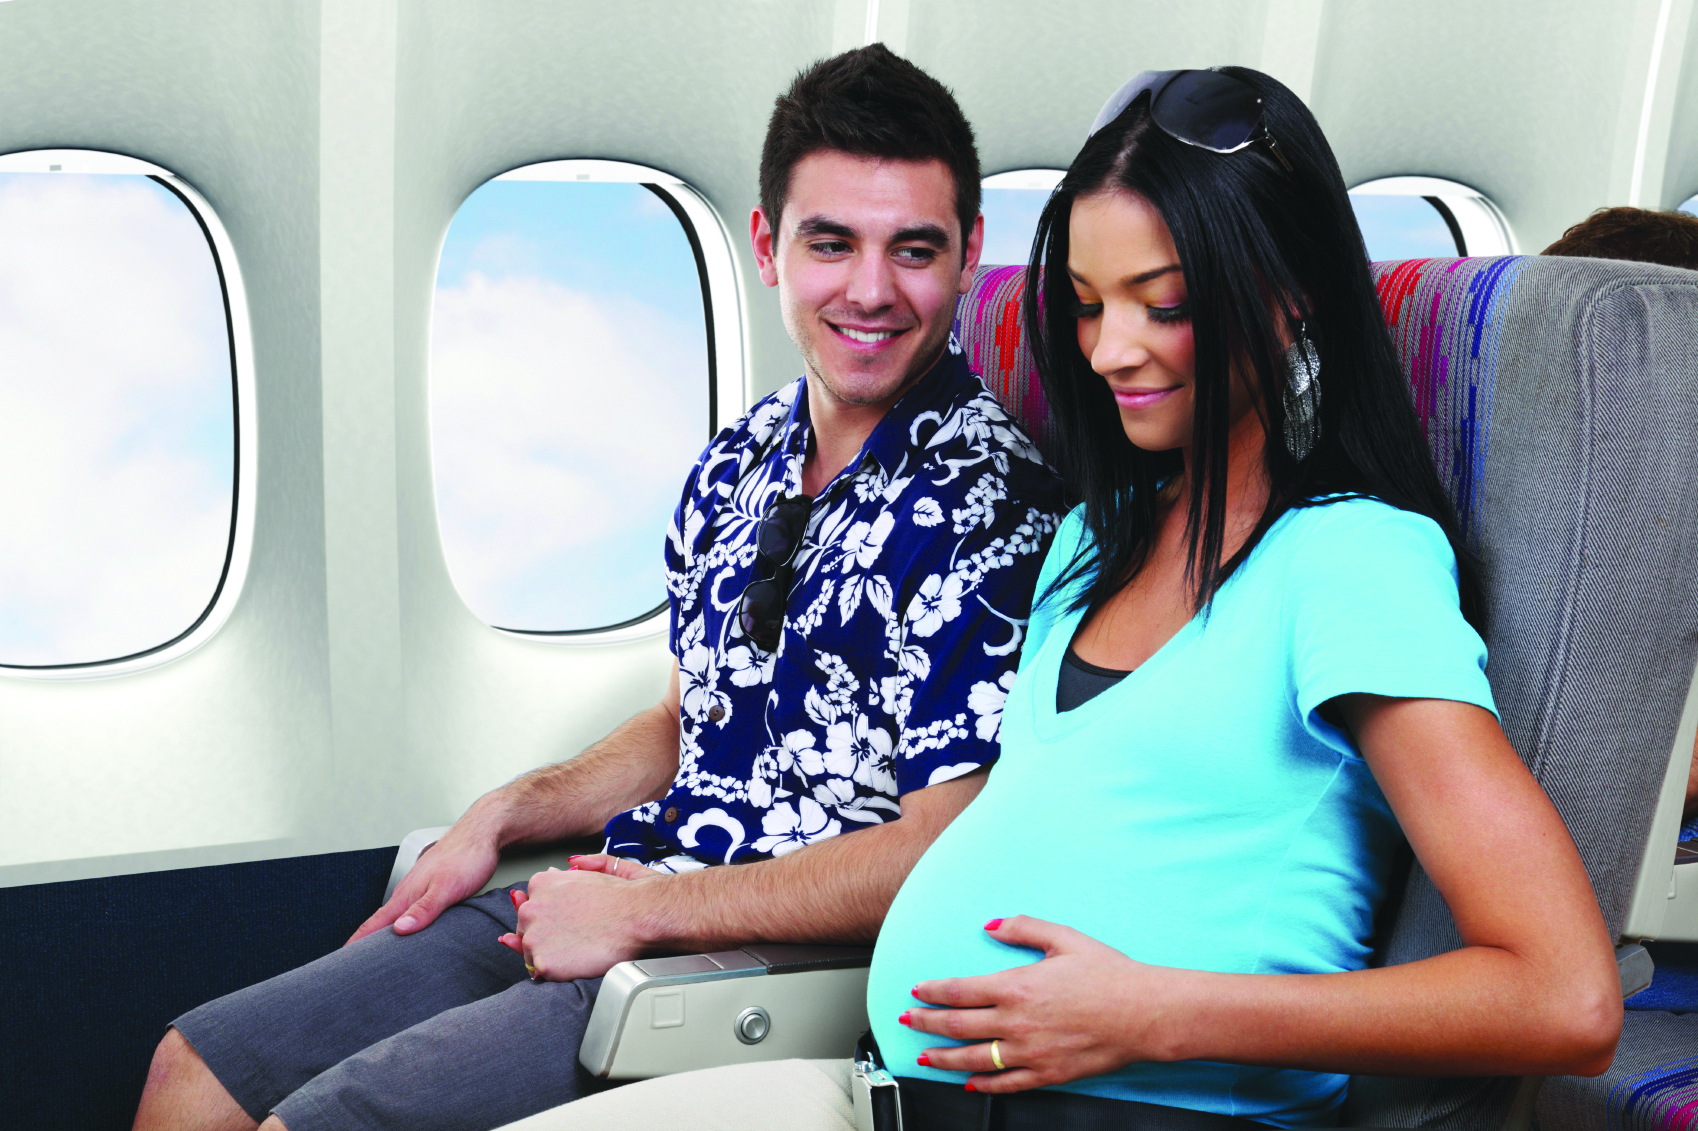 Make sure to plan accordingly and be prepared with our top 15 expert tips for traveling while pregnant.